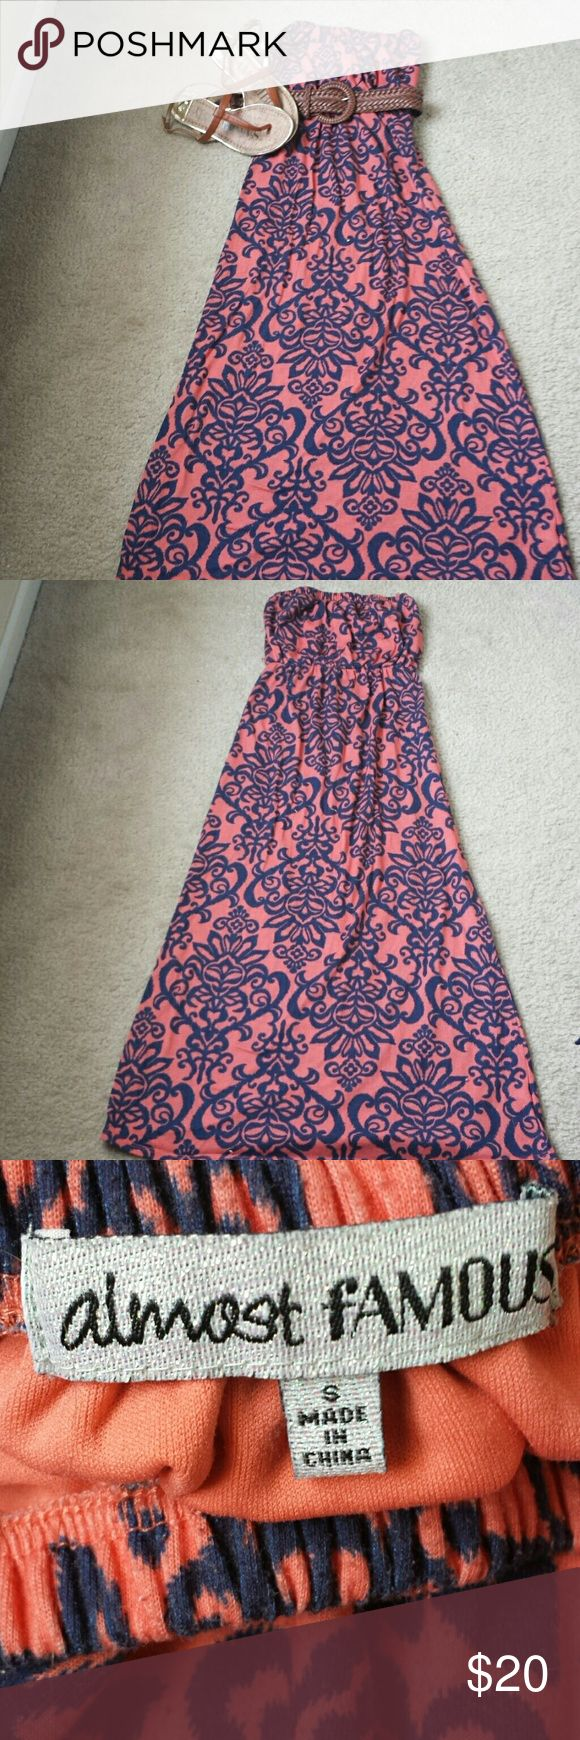 Coral and navy tribal print maxi dress jr/ms small Coral and navy tribal print maxi dress size Jr/Ms small. The dress has 2 string belt loops, 1 on each side. You can choose to wear with or without a belt. Almost Famous Dresses Maxi